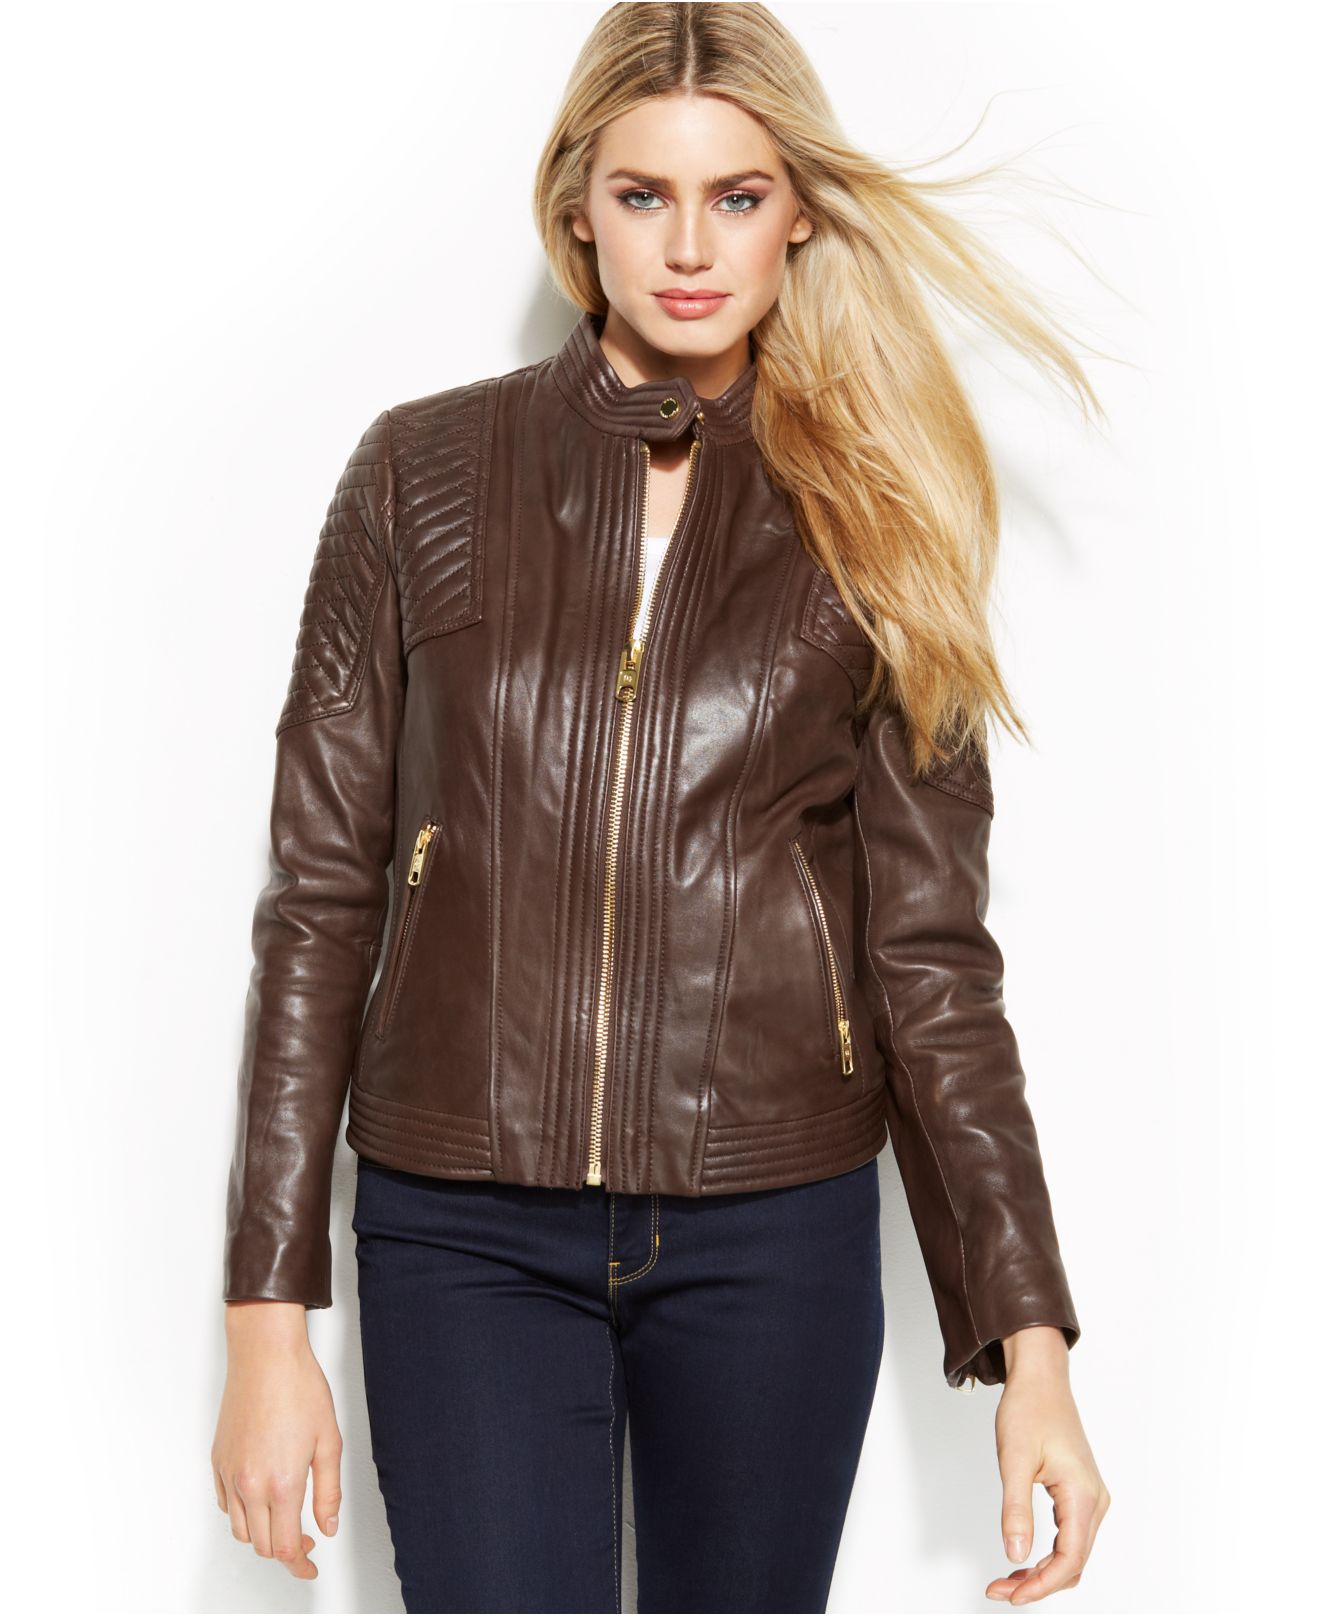 Michael kors quilted leather jacket